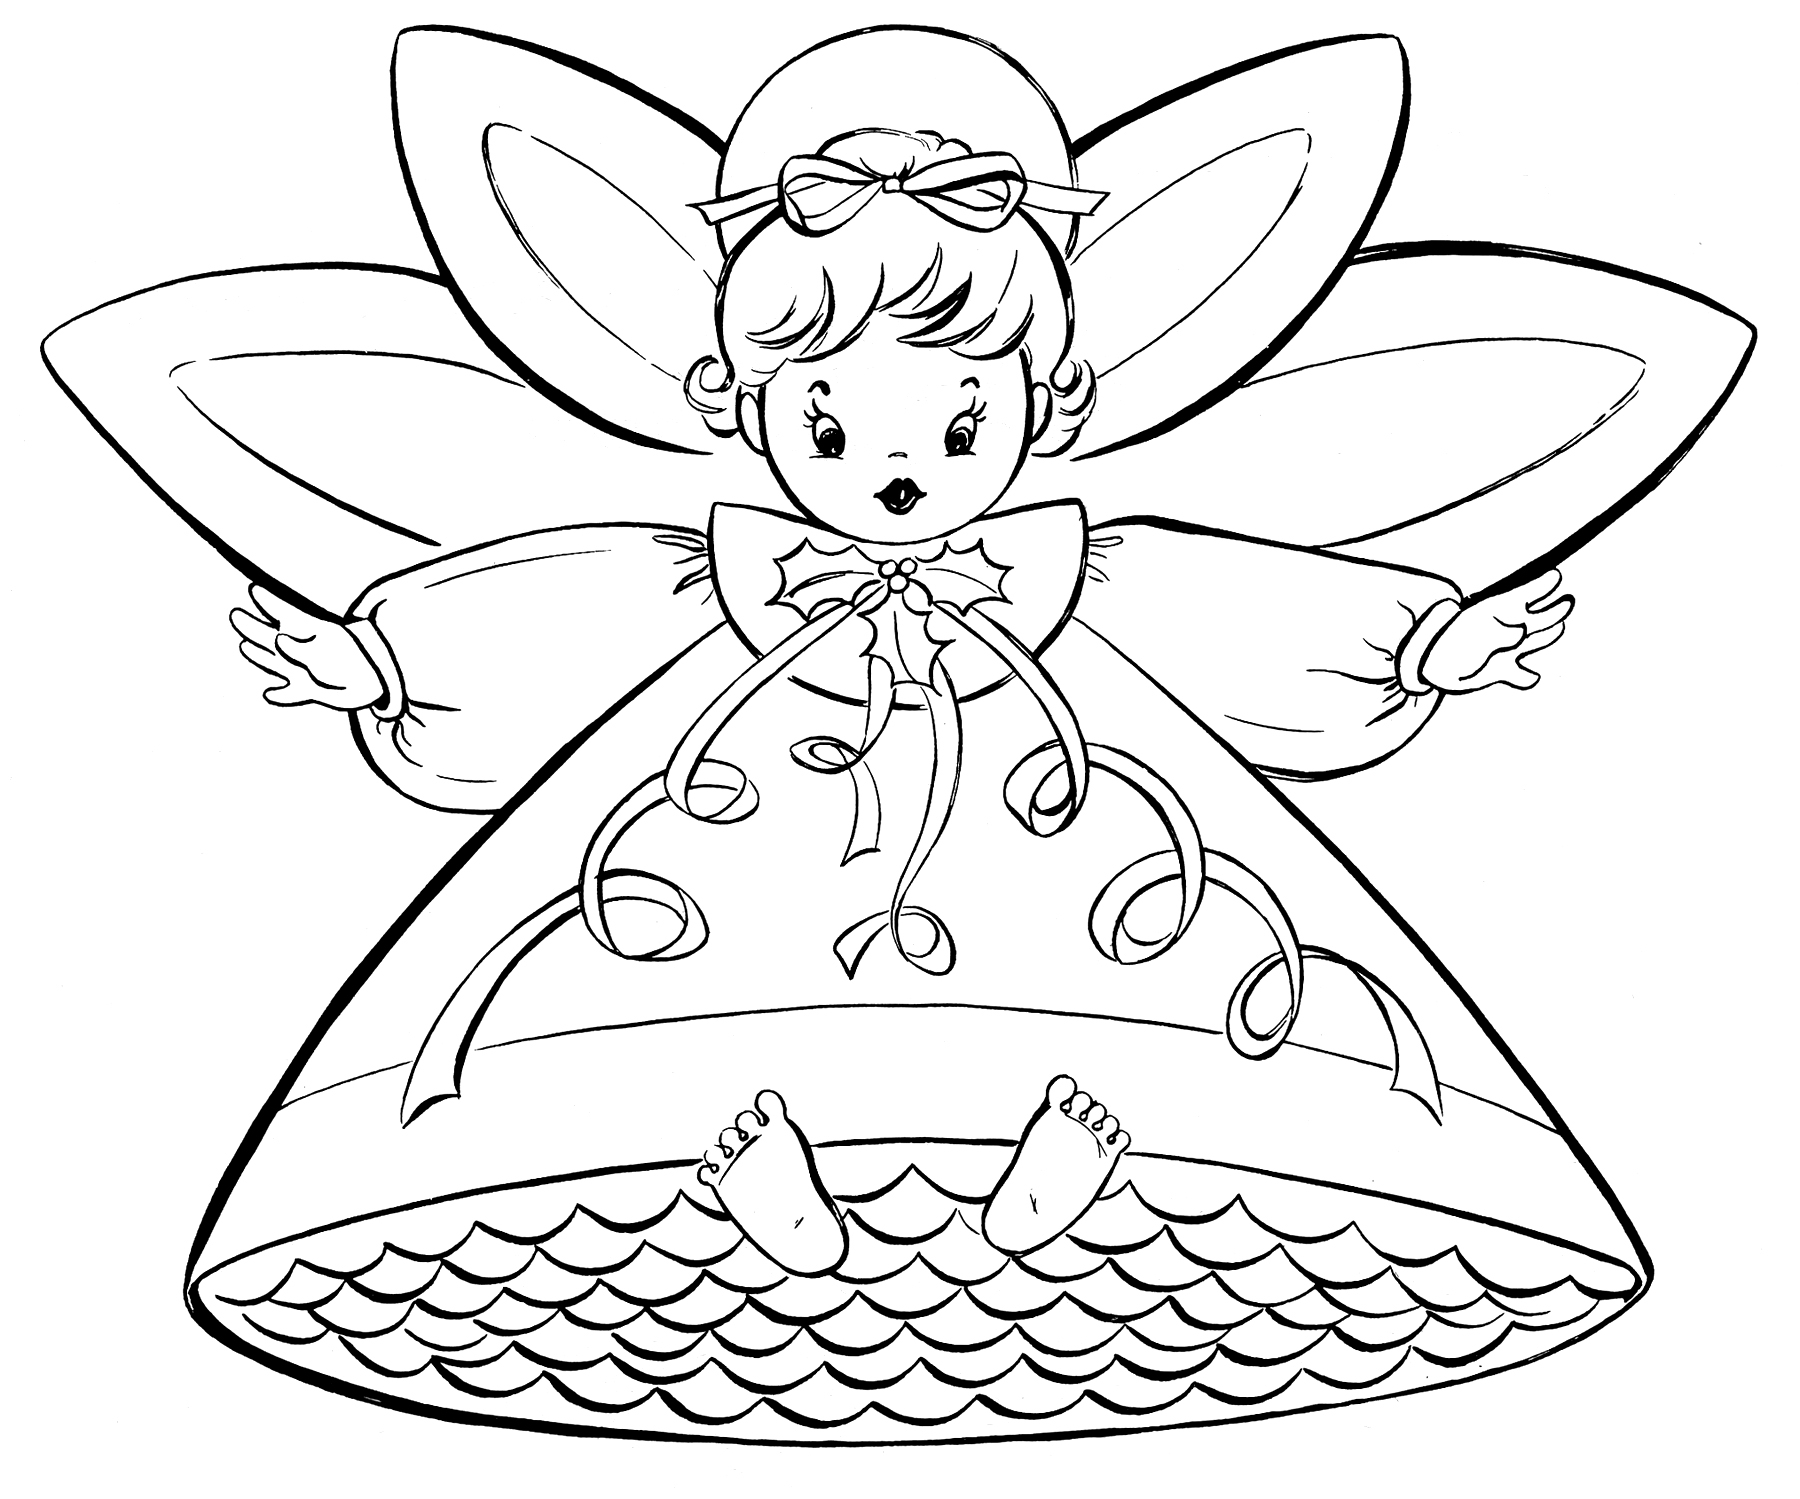 Angels Coloring Page 2 GraphicsFairy moreover 15 best images about victorian christmas coloring pages on on free victorian christmas coloring pages along with nice coloring pages category for glittering christmas coloring on free victorian christmas coloring pages as well as coloring pages free victorian christmas coloring pages printable on free victorian christmas coloring pages further 25 best ideas about printable christmas coloring pages on on free victorian christmas coloring pages